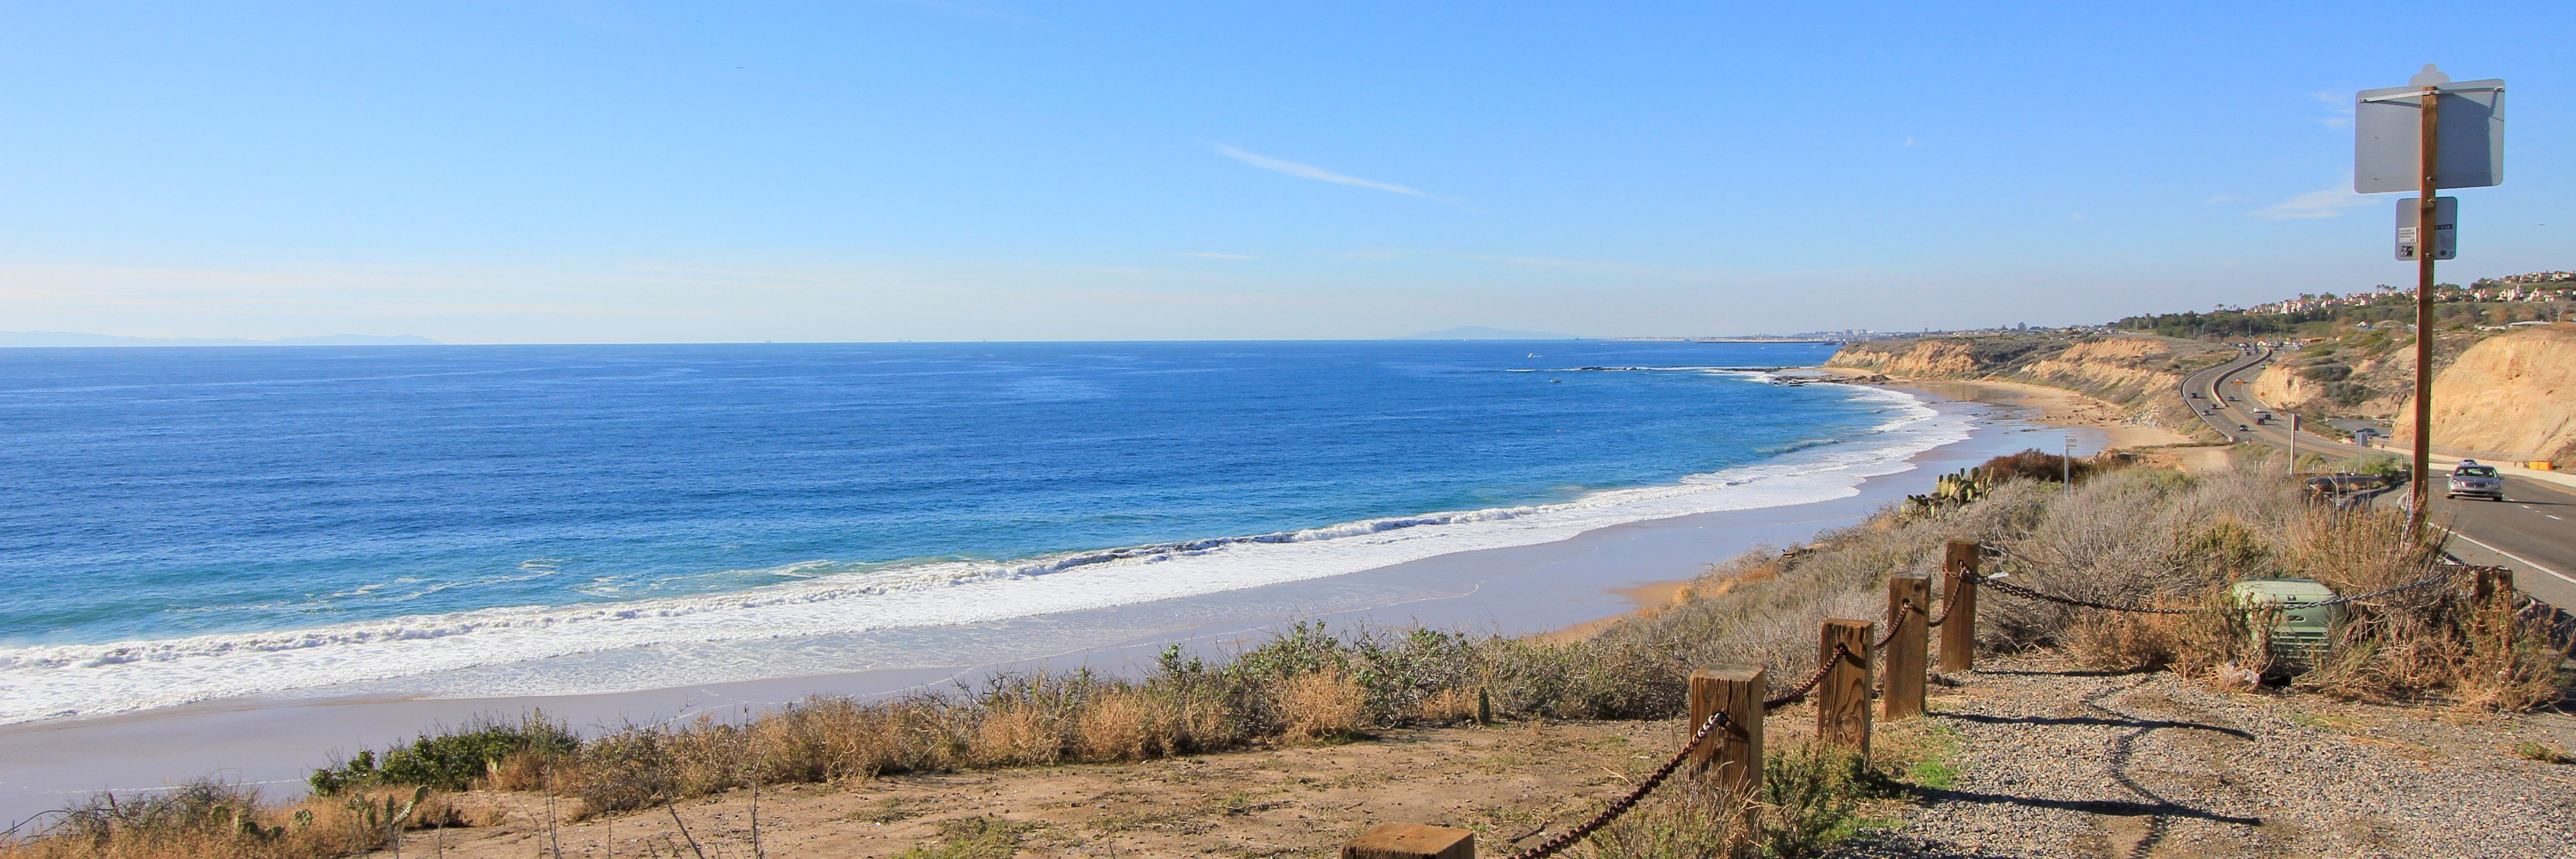 Emerald Bay is a private gated community in laguna beach Emerald